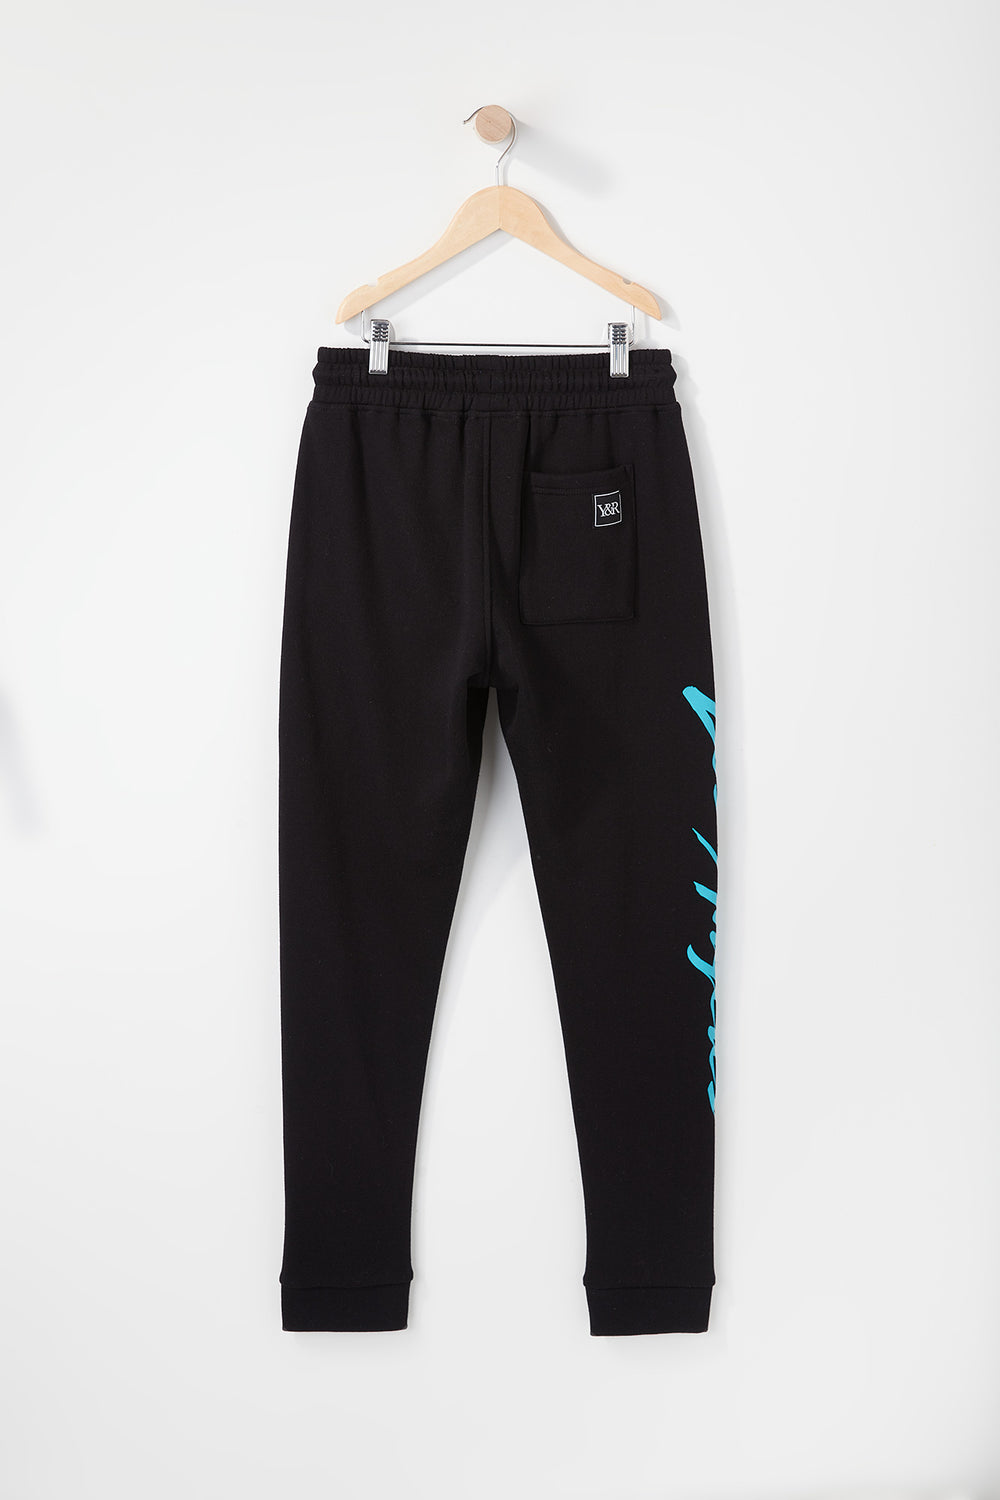 Young & Reckless Boys Retro Script Jogger Black